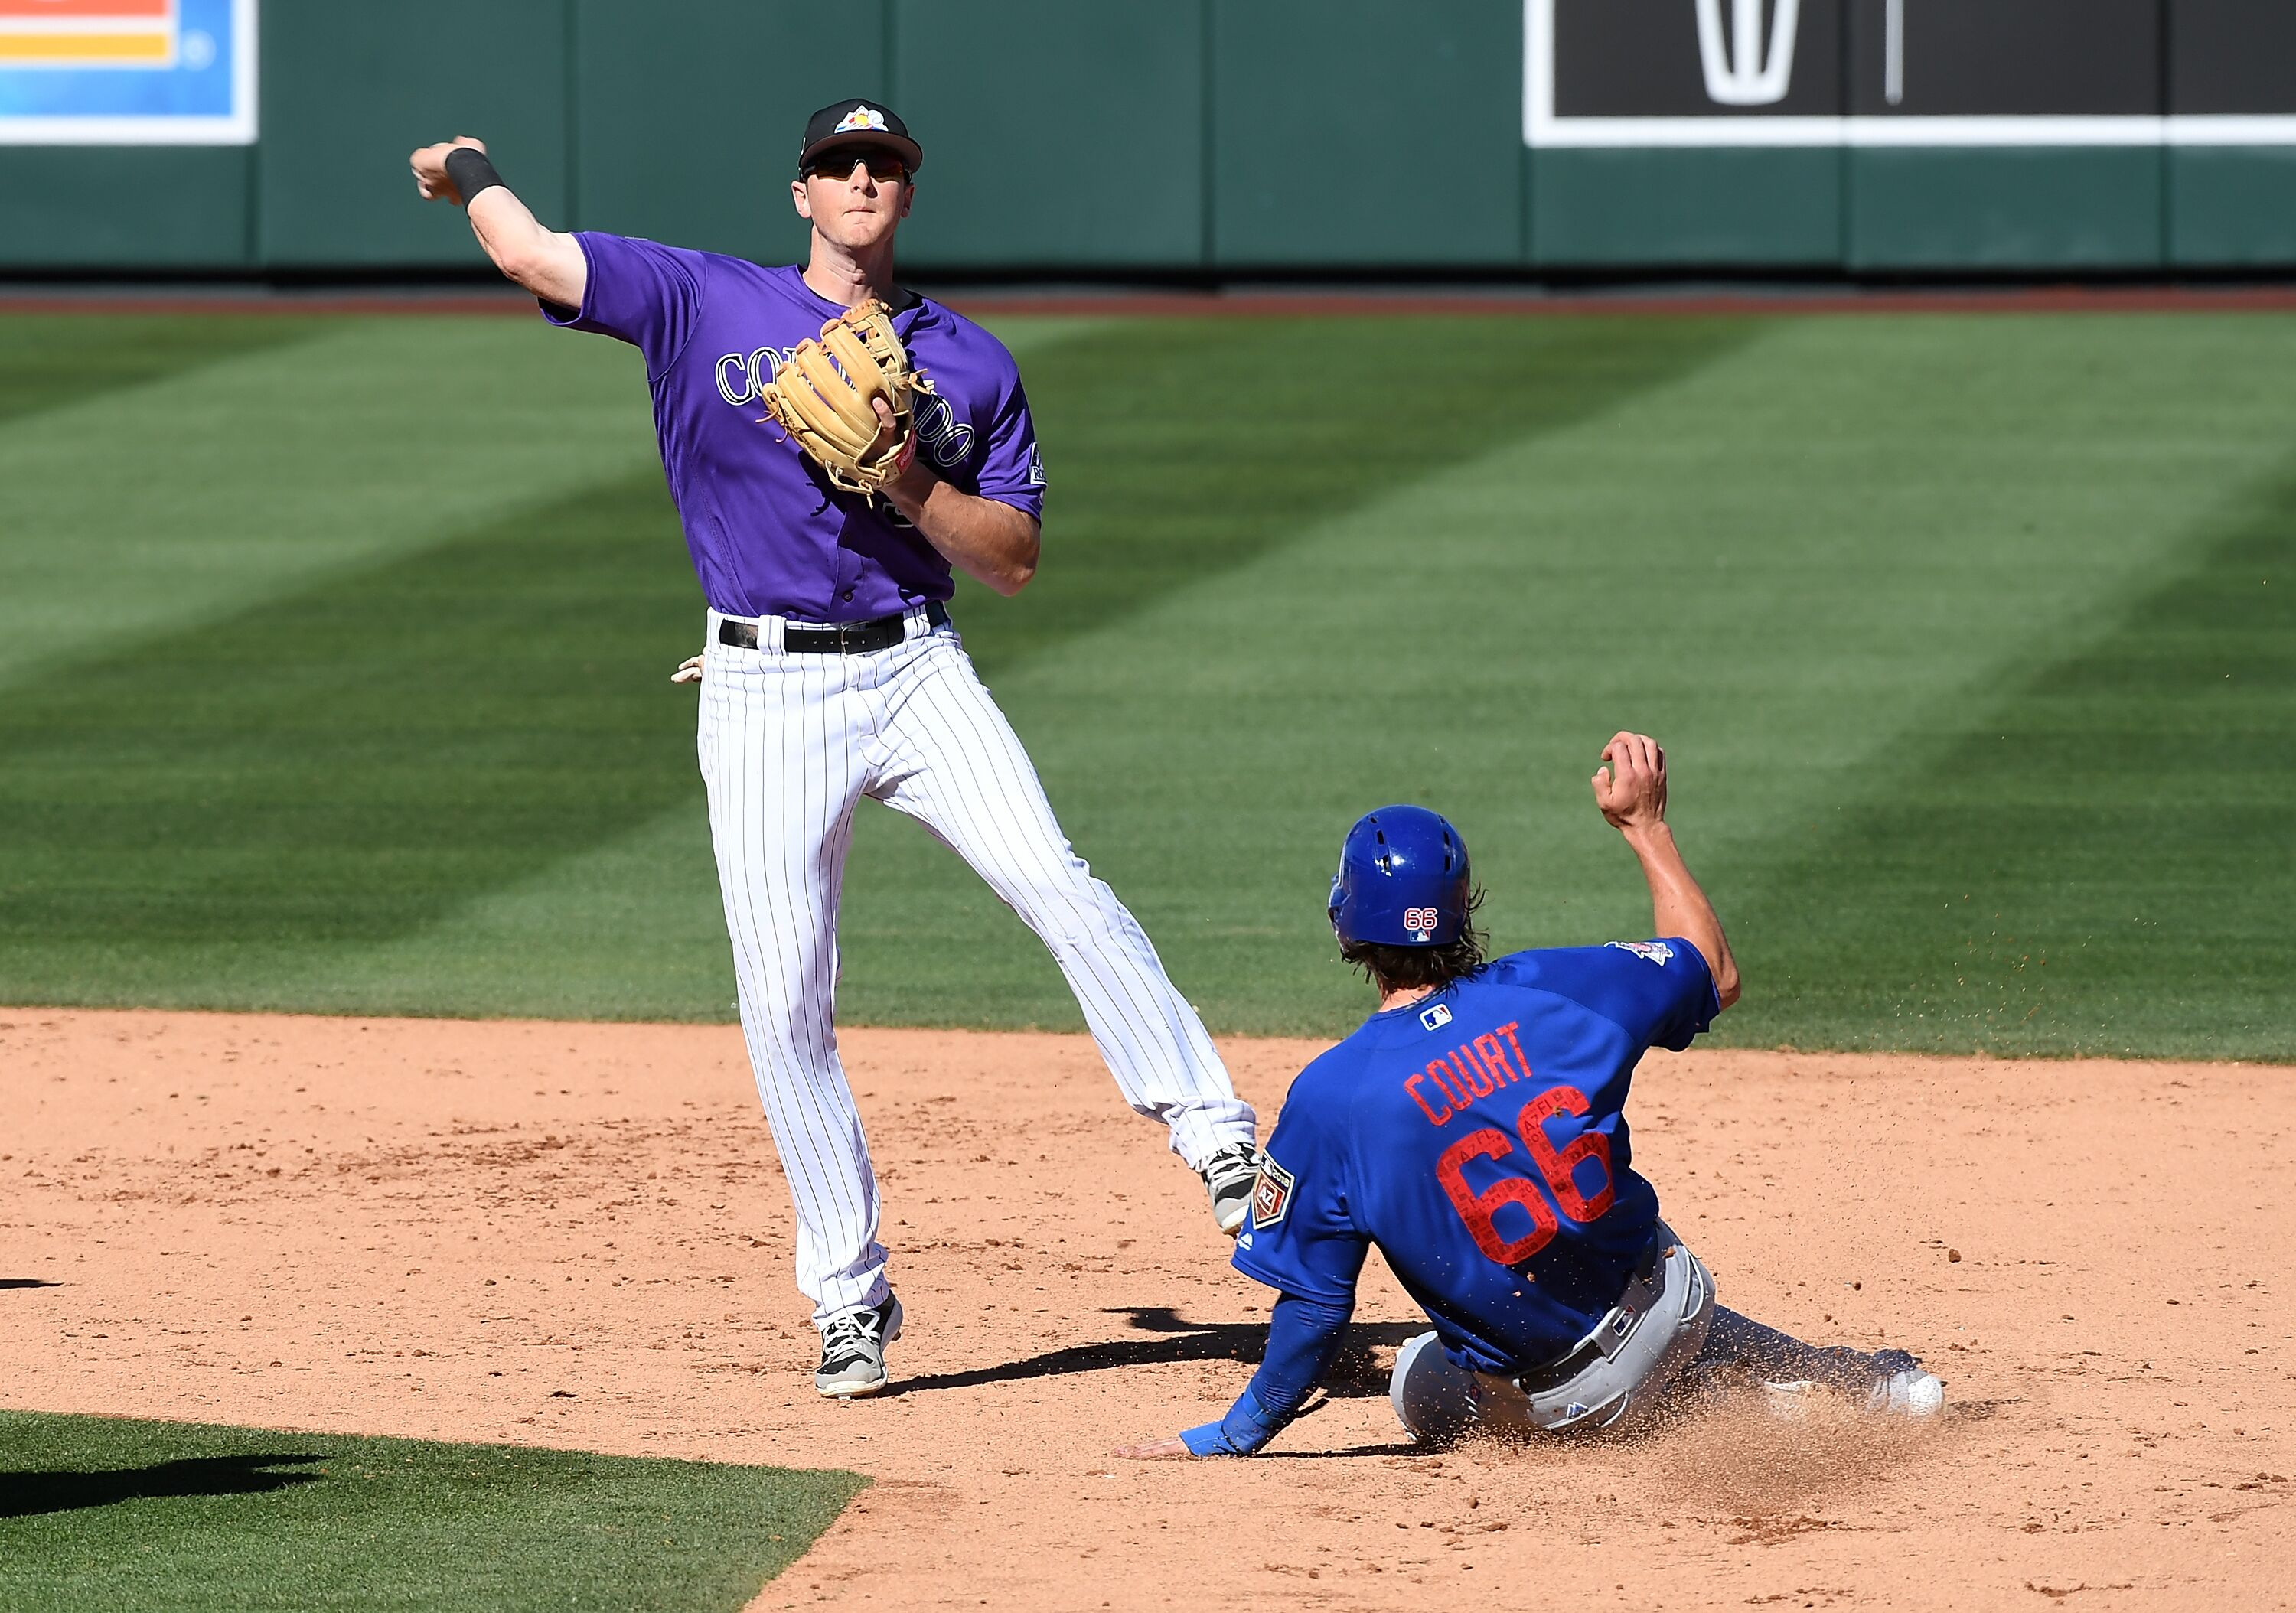 927729482-chicago-cubs-v-colorado-rockies.jpg